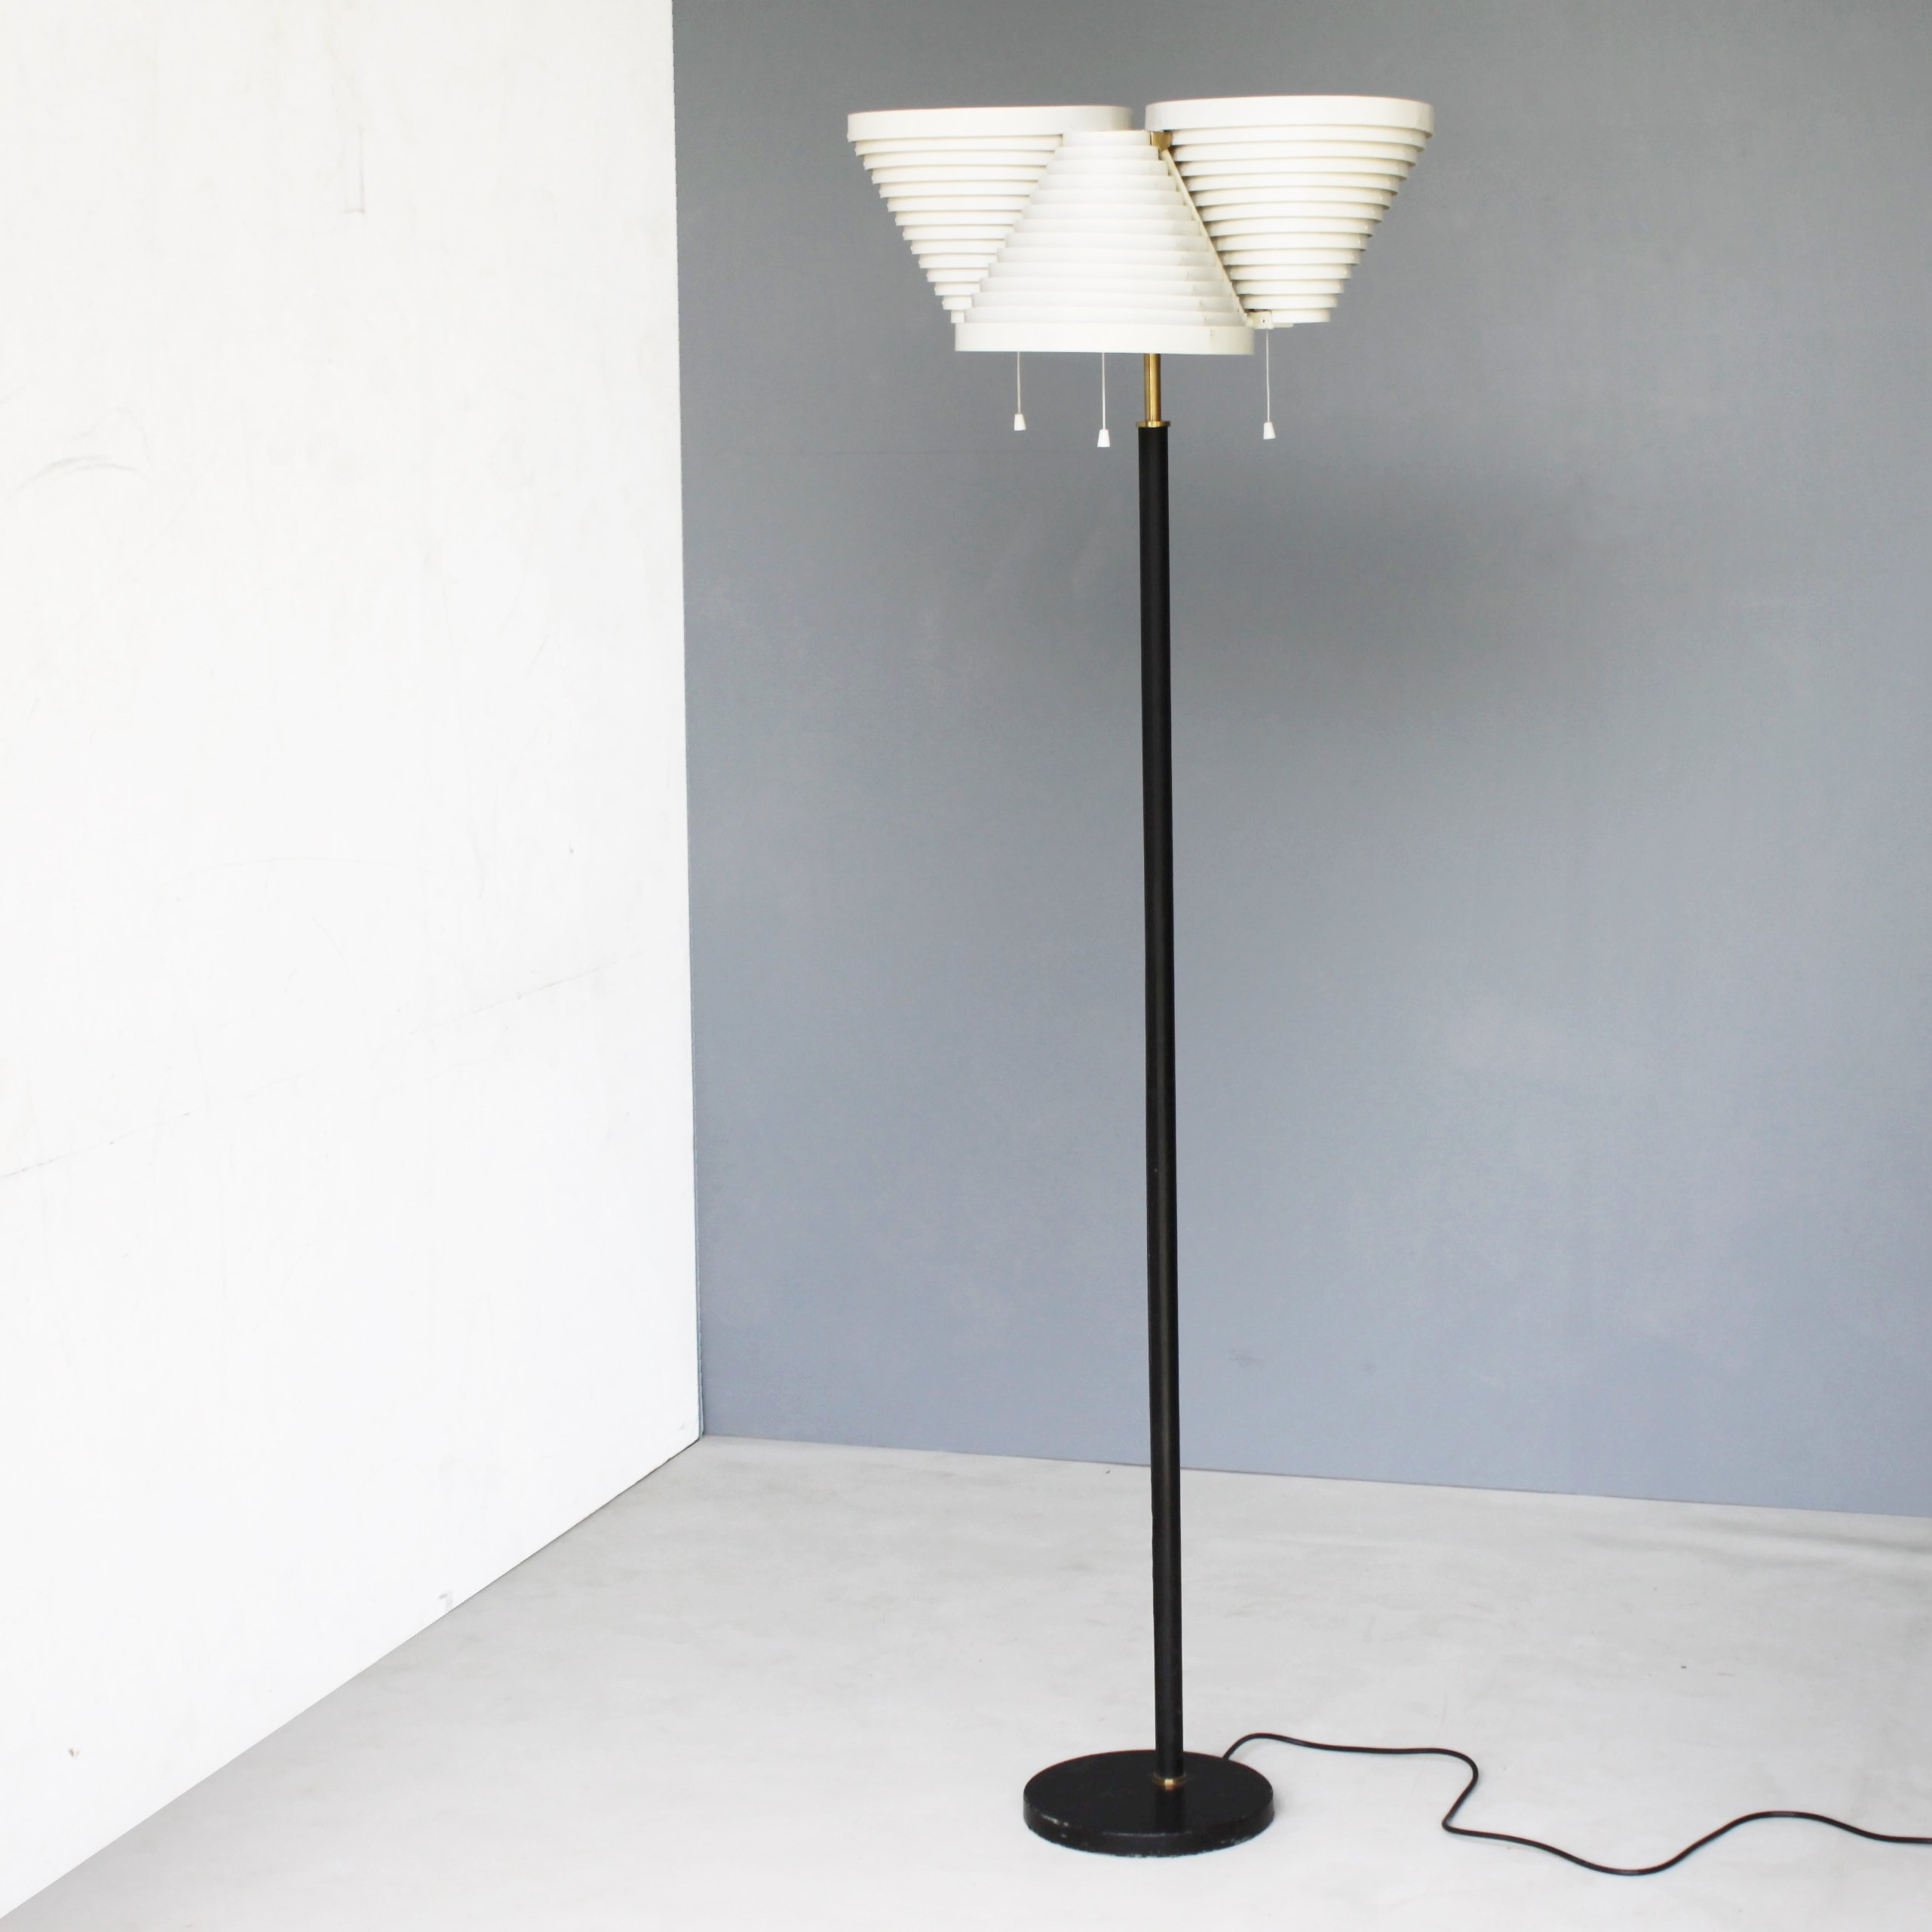 Floor lamp a809 by alvar aalto for valaisinpaja oy 61188 floor lamp a809 by alvar aalto for valaisinpaja oy mozeypictures Image collections